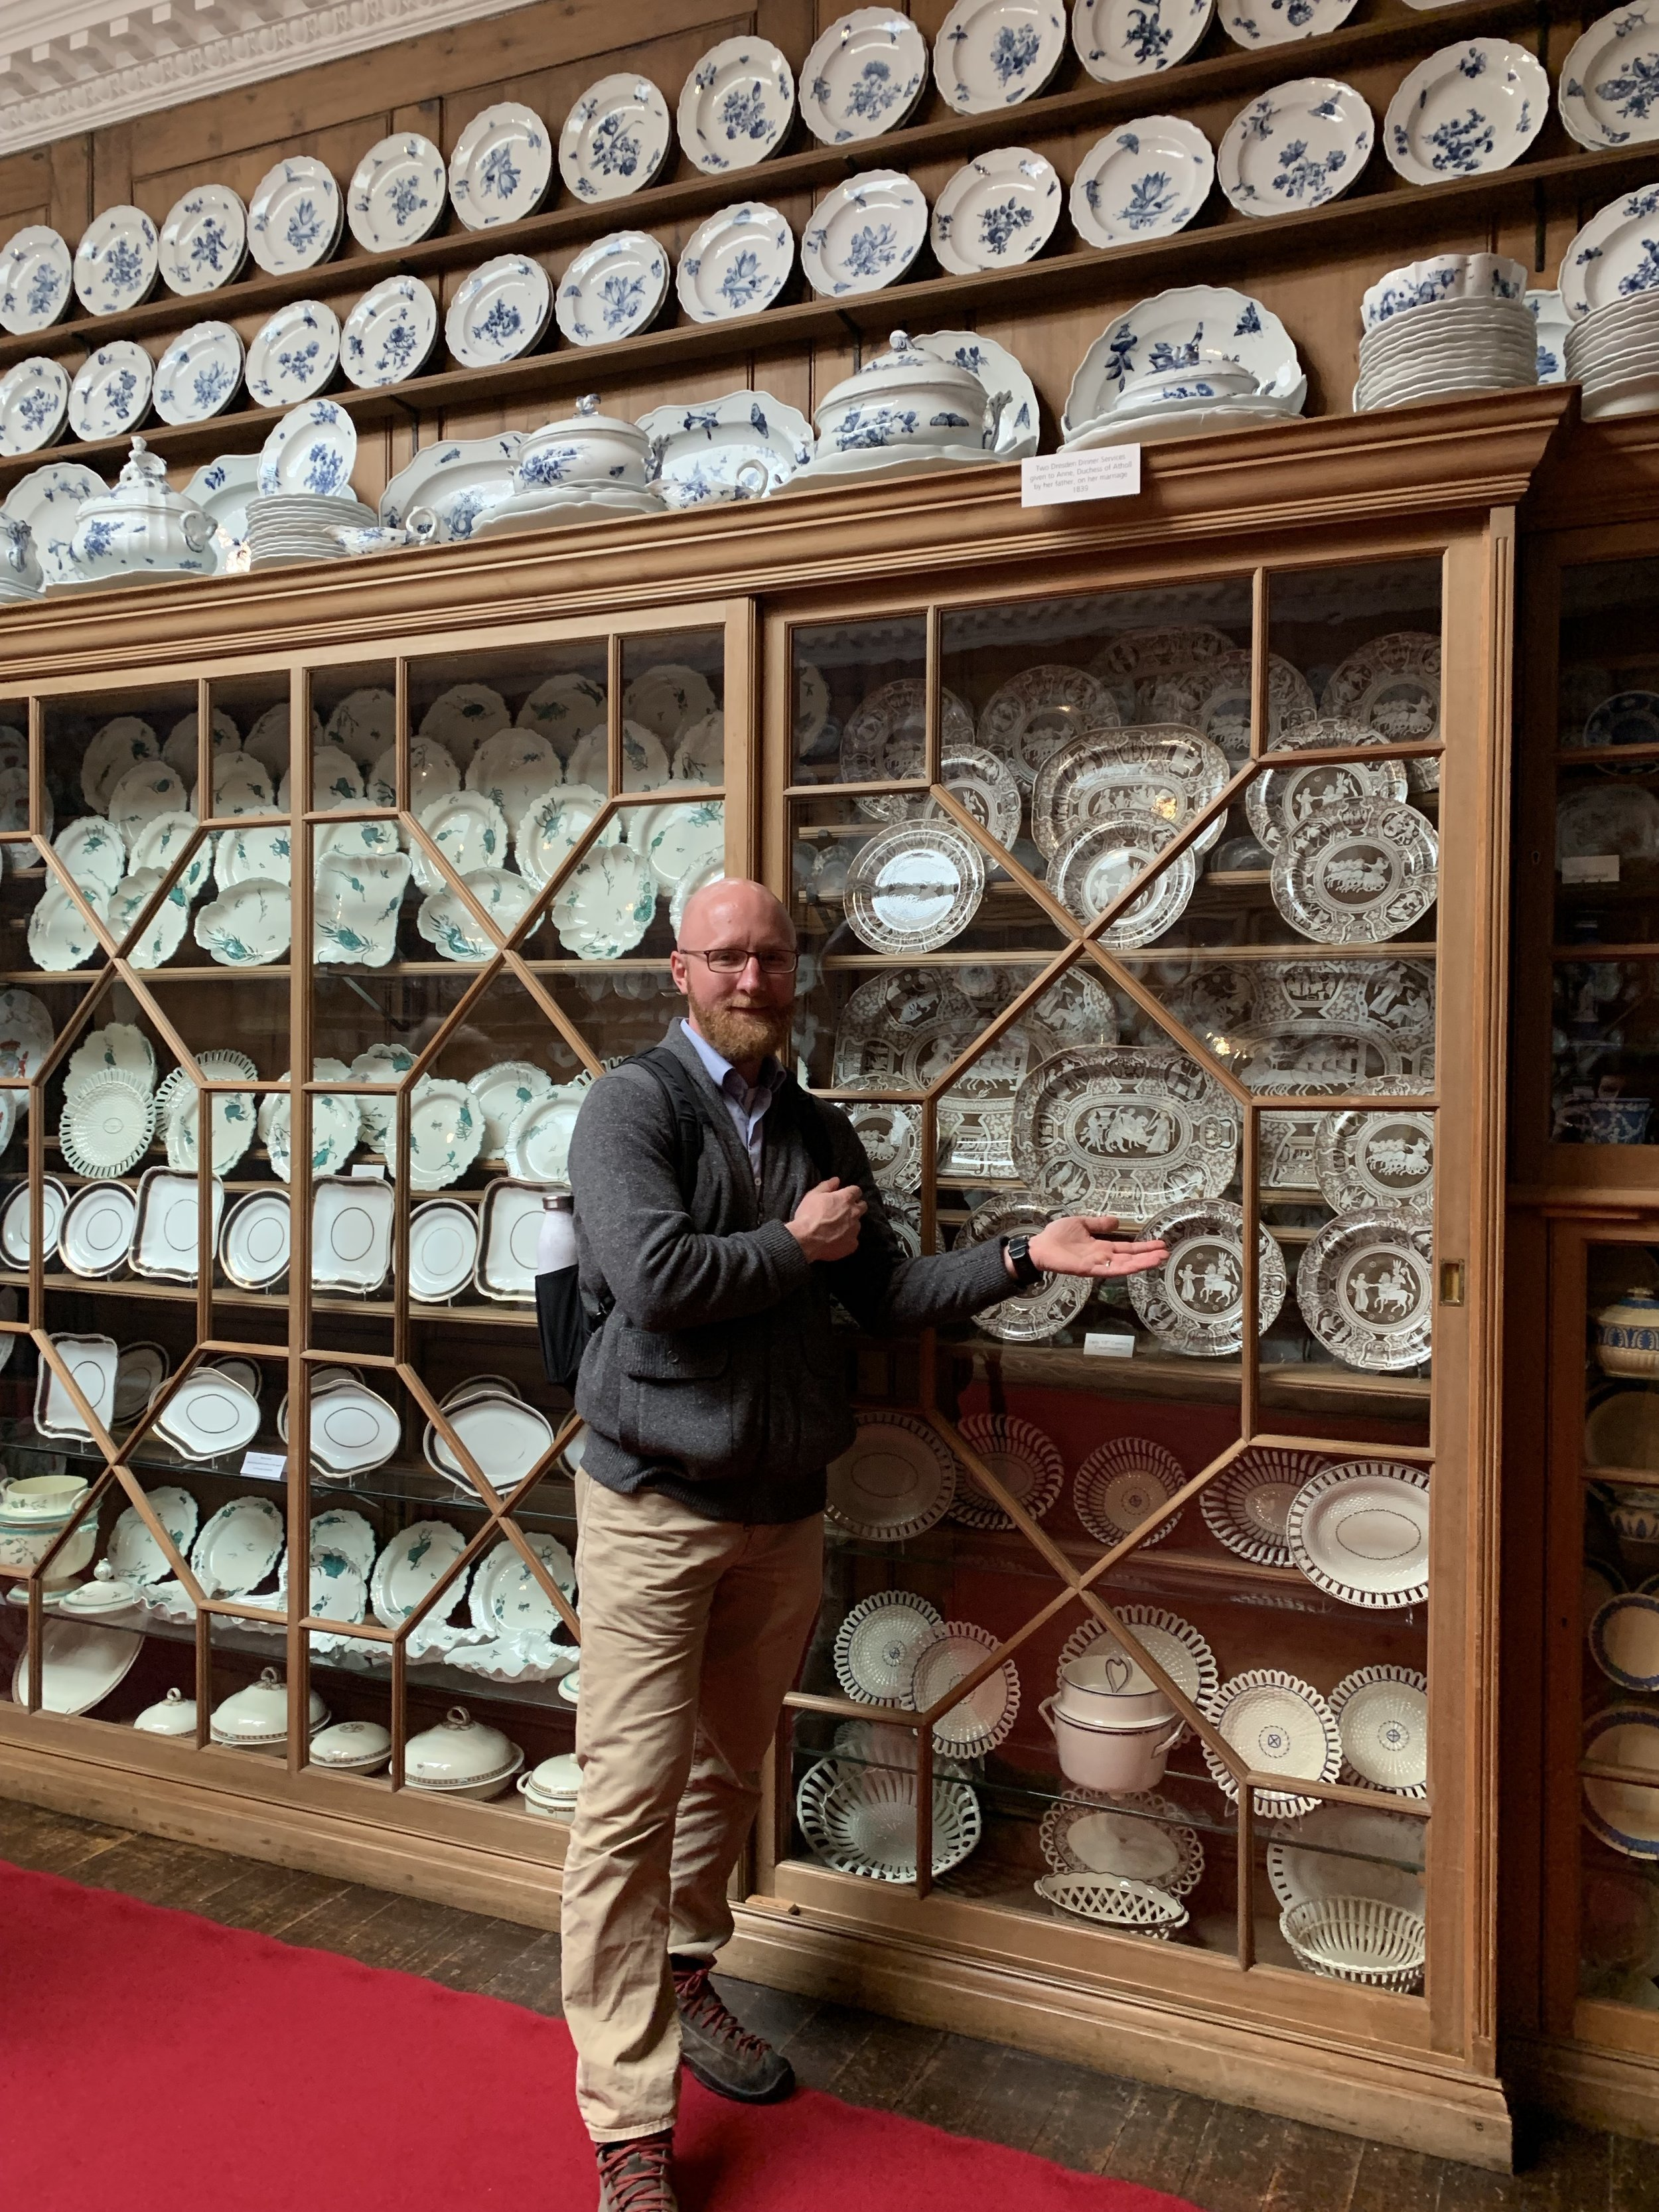 Just one of many china collections! I'm a sucker for dinnerware.  Blair Atholl Castle, Scotland